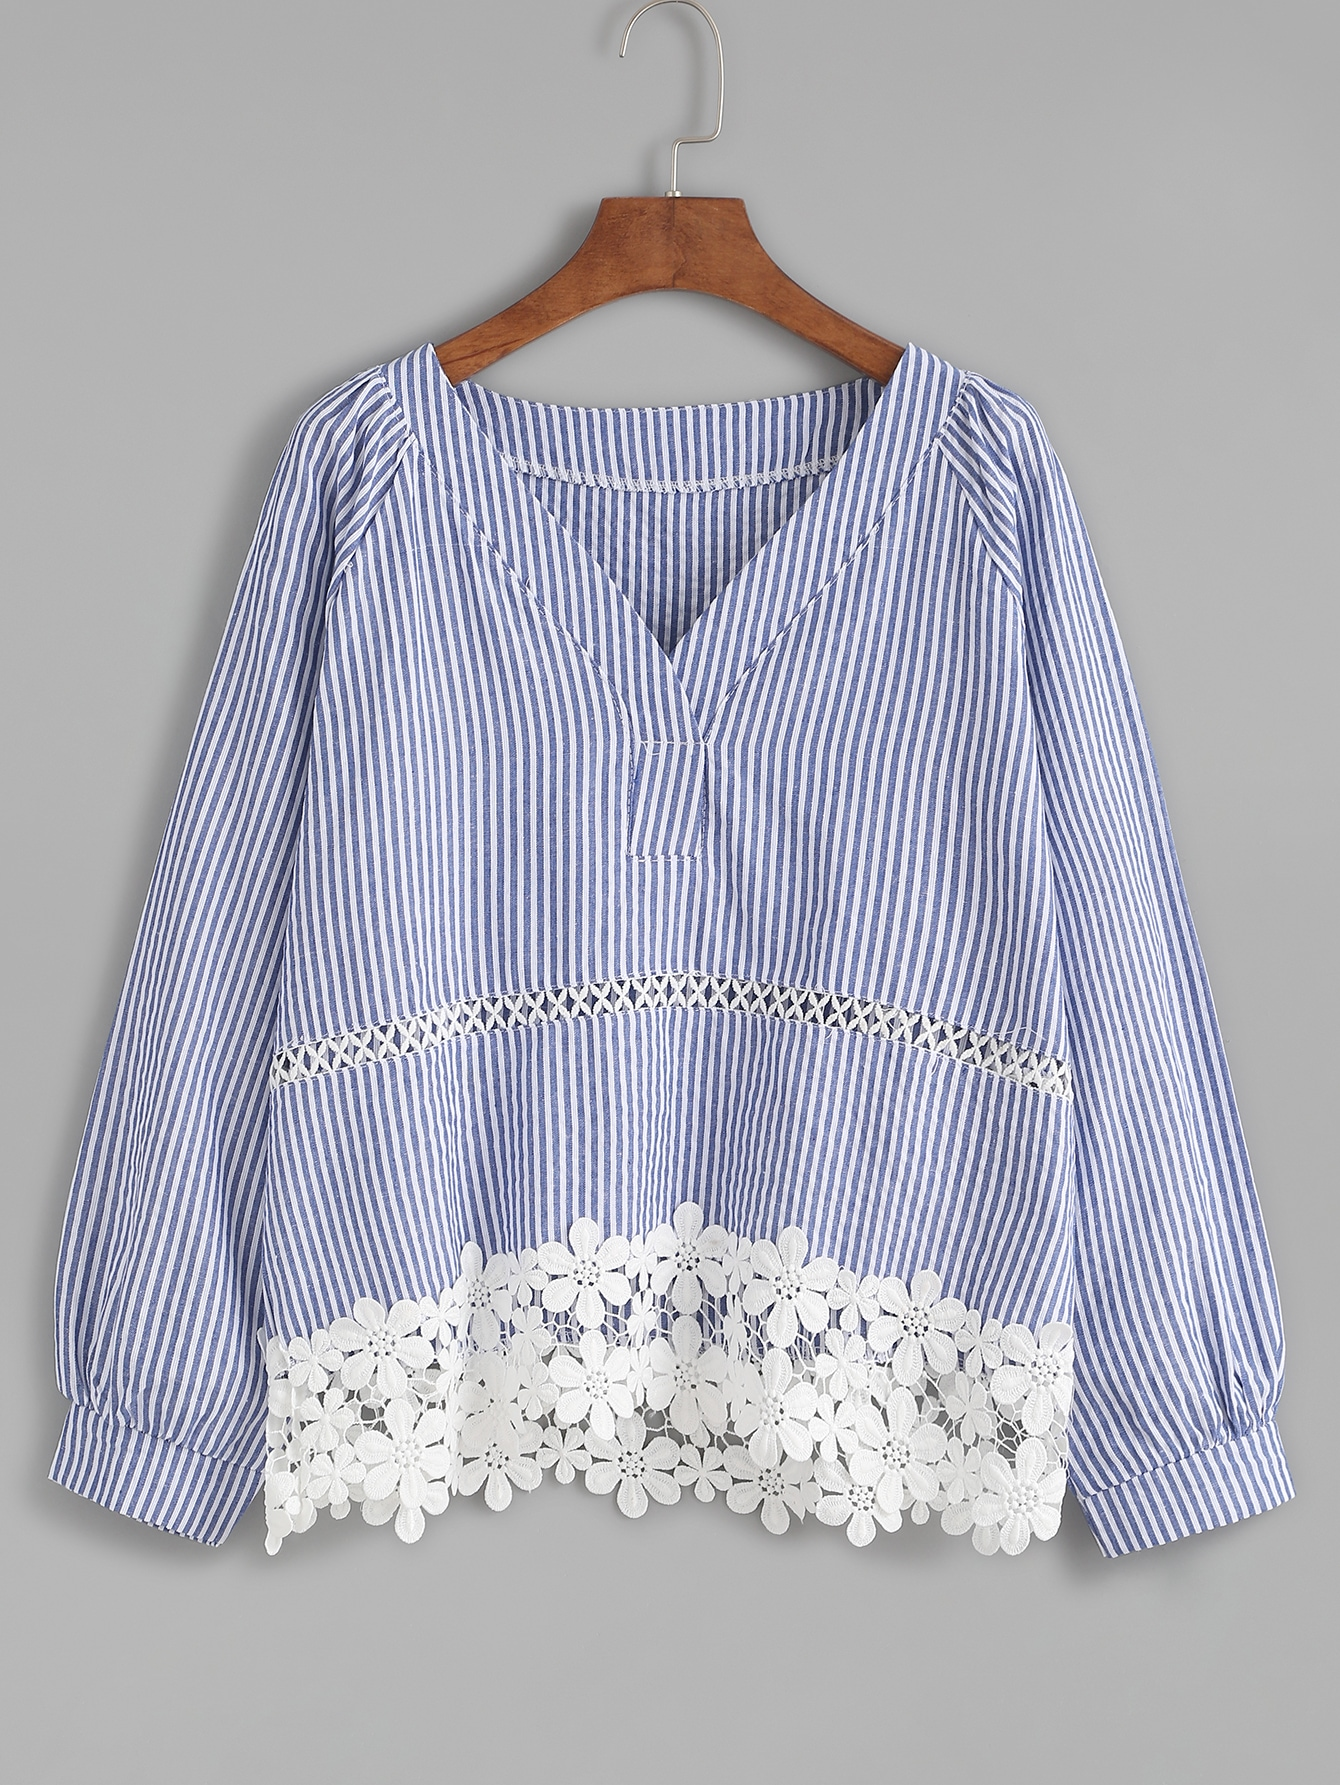 Blue Striped Appliques Hollow Out BlouseBlue Striped Appliques Hollow Out Blouse<br><br>color: Blue<br>size: one-size